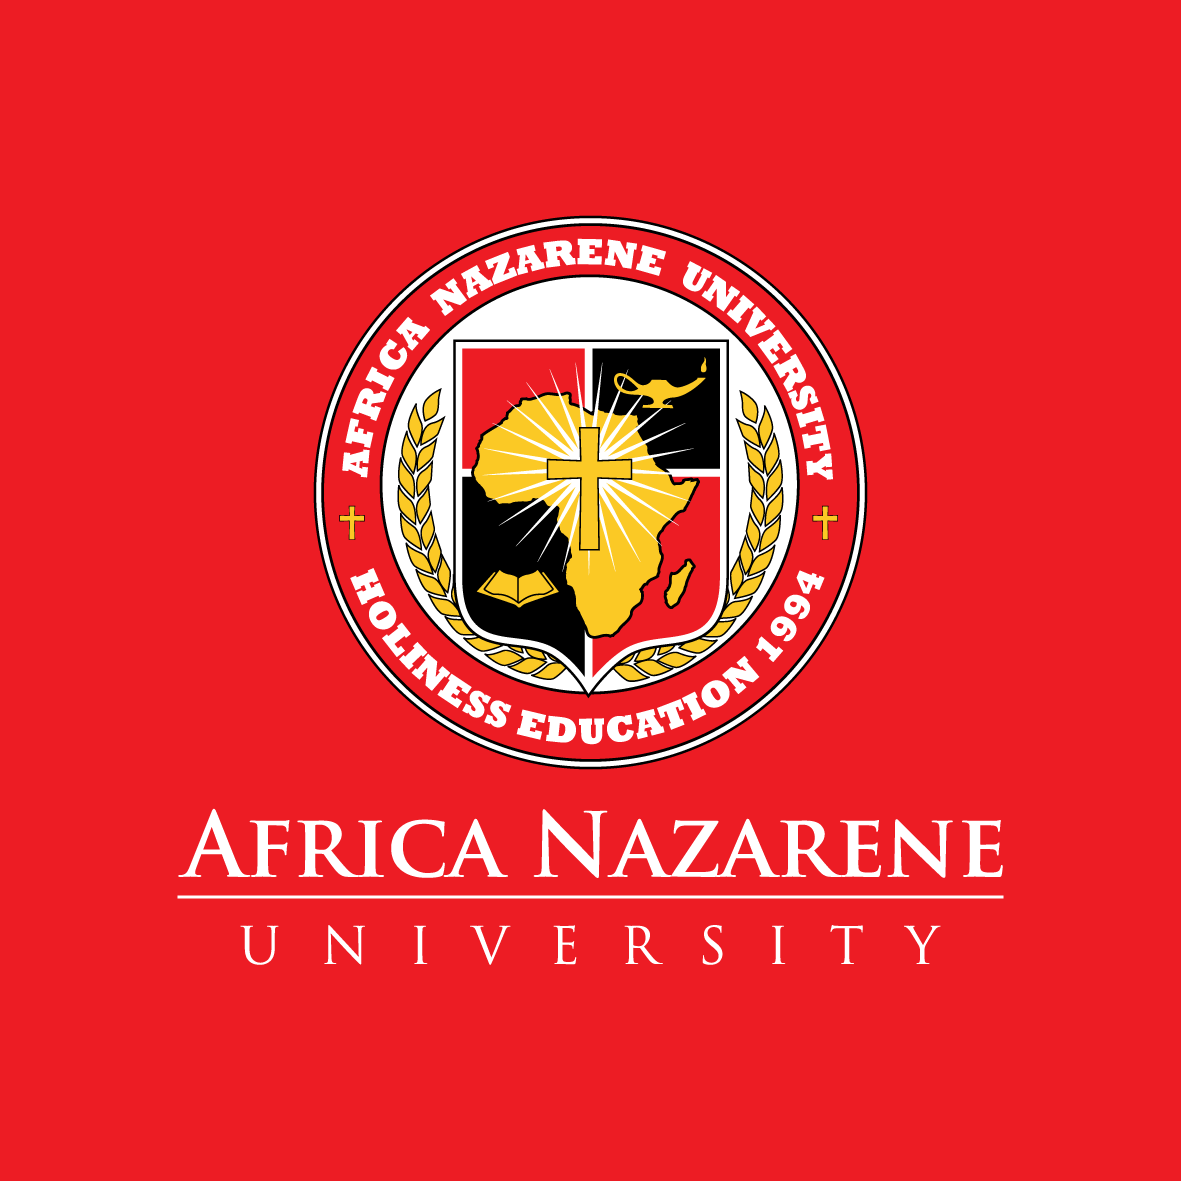 Africa Nazarene University Scholarship programs